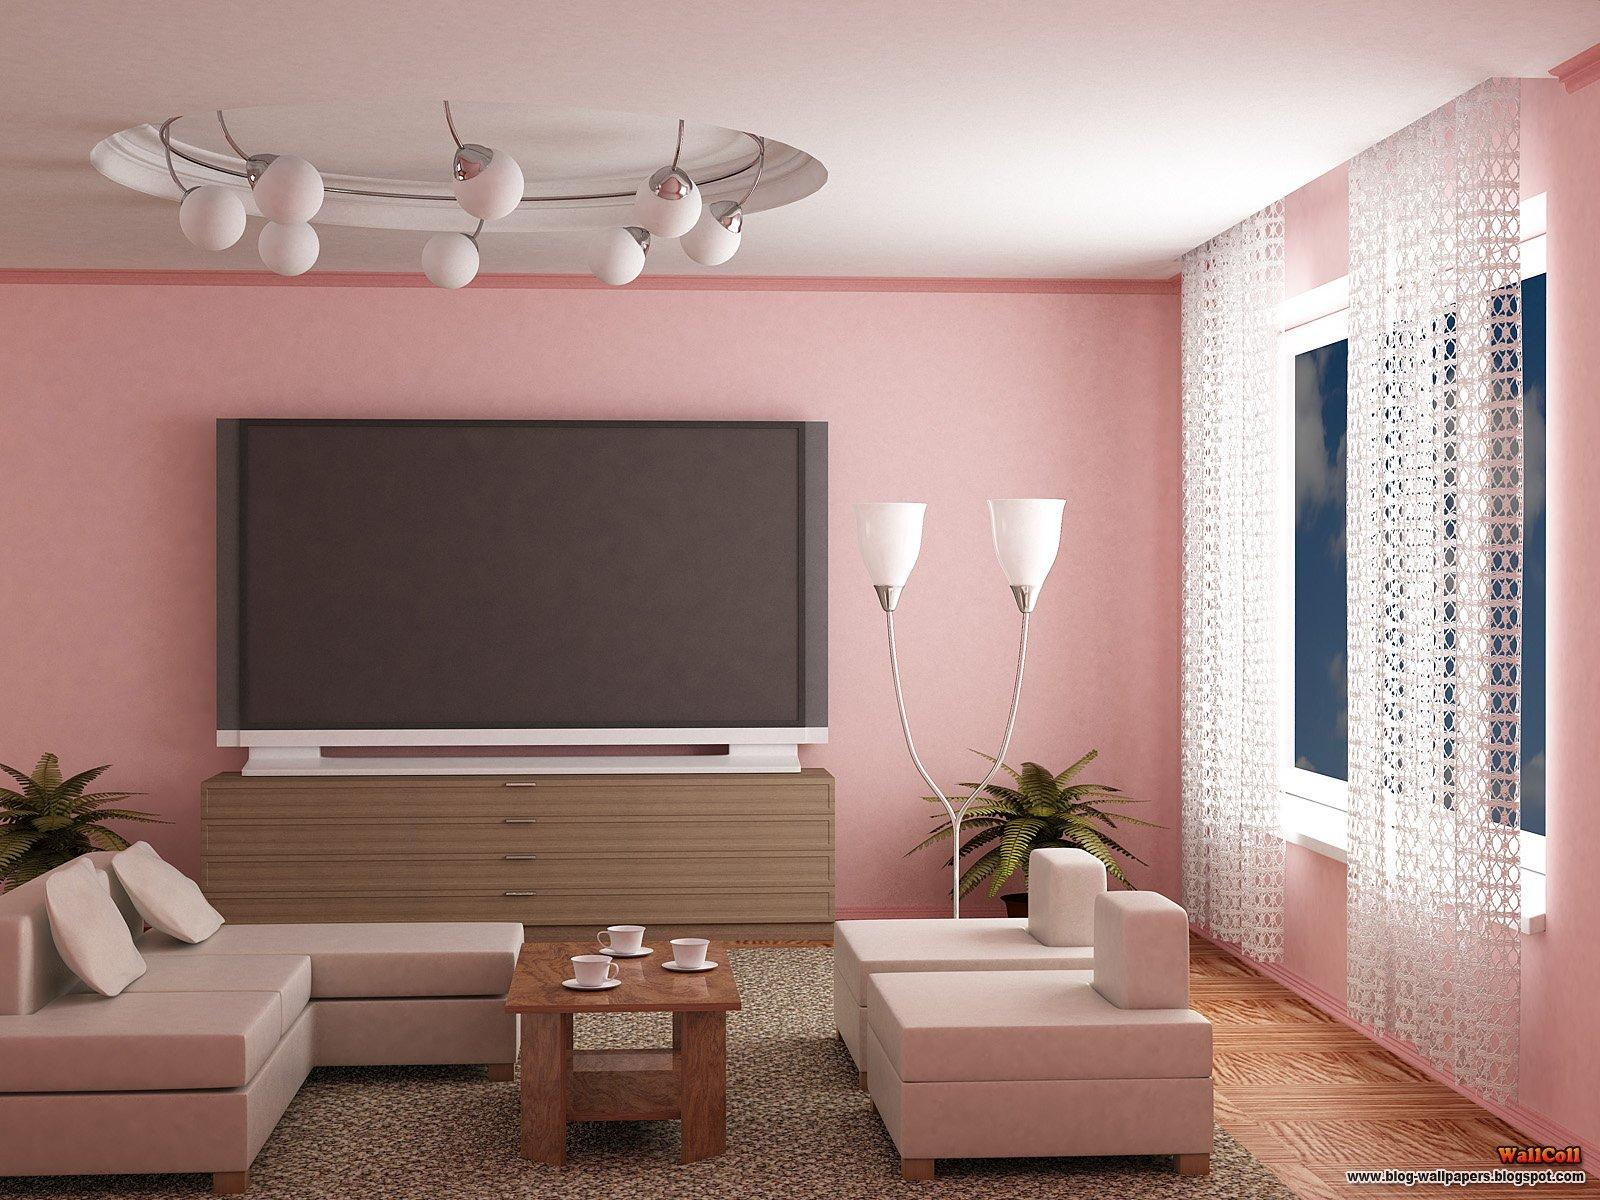 Bedroom Colour Combination Asian Paints asian paints royale pink colour rooms - home design centre